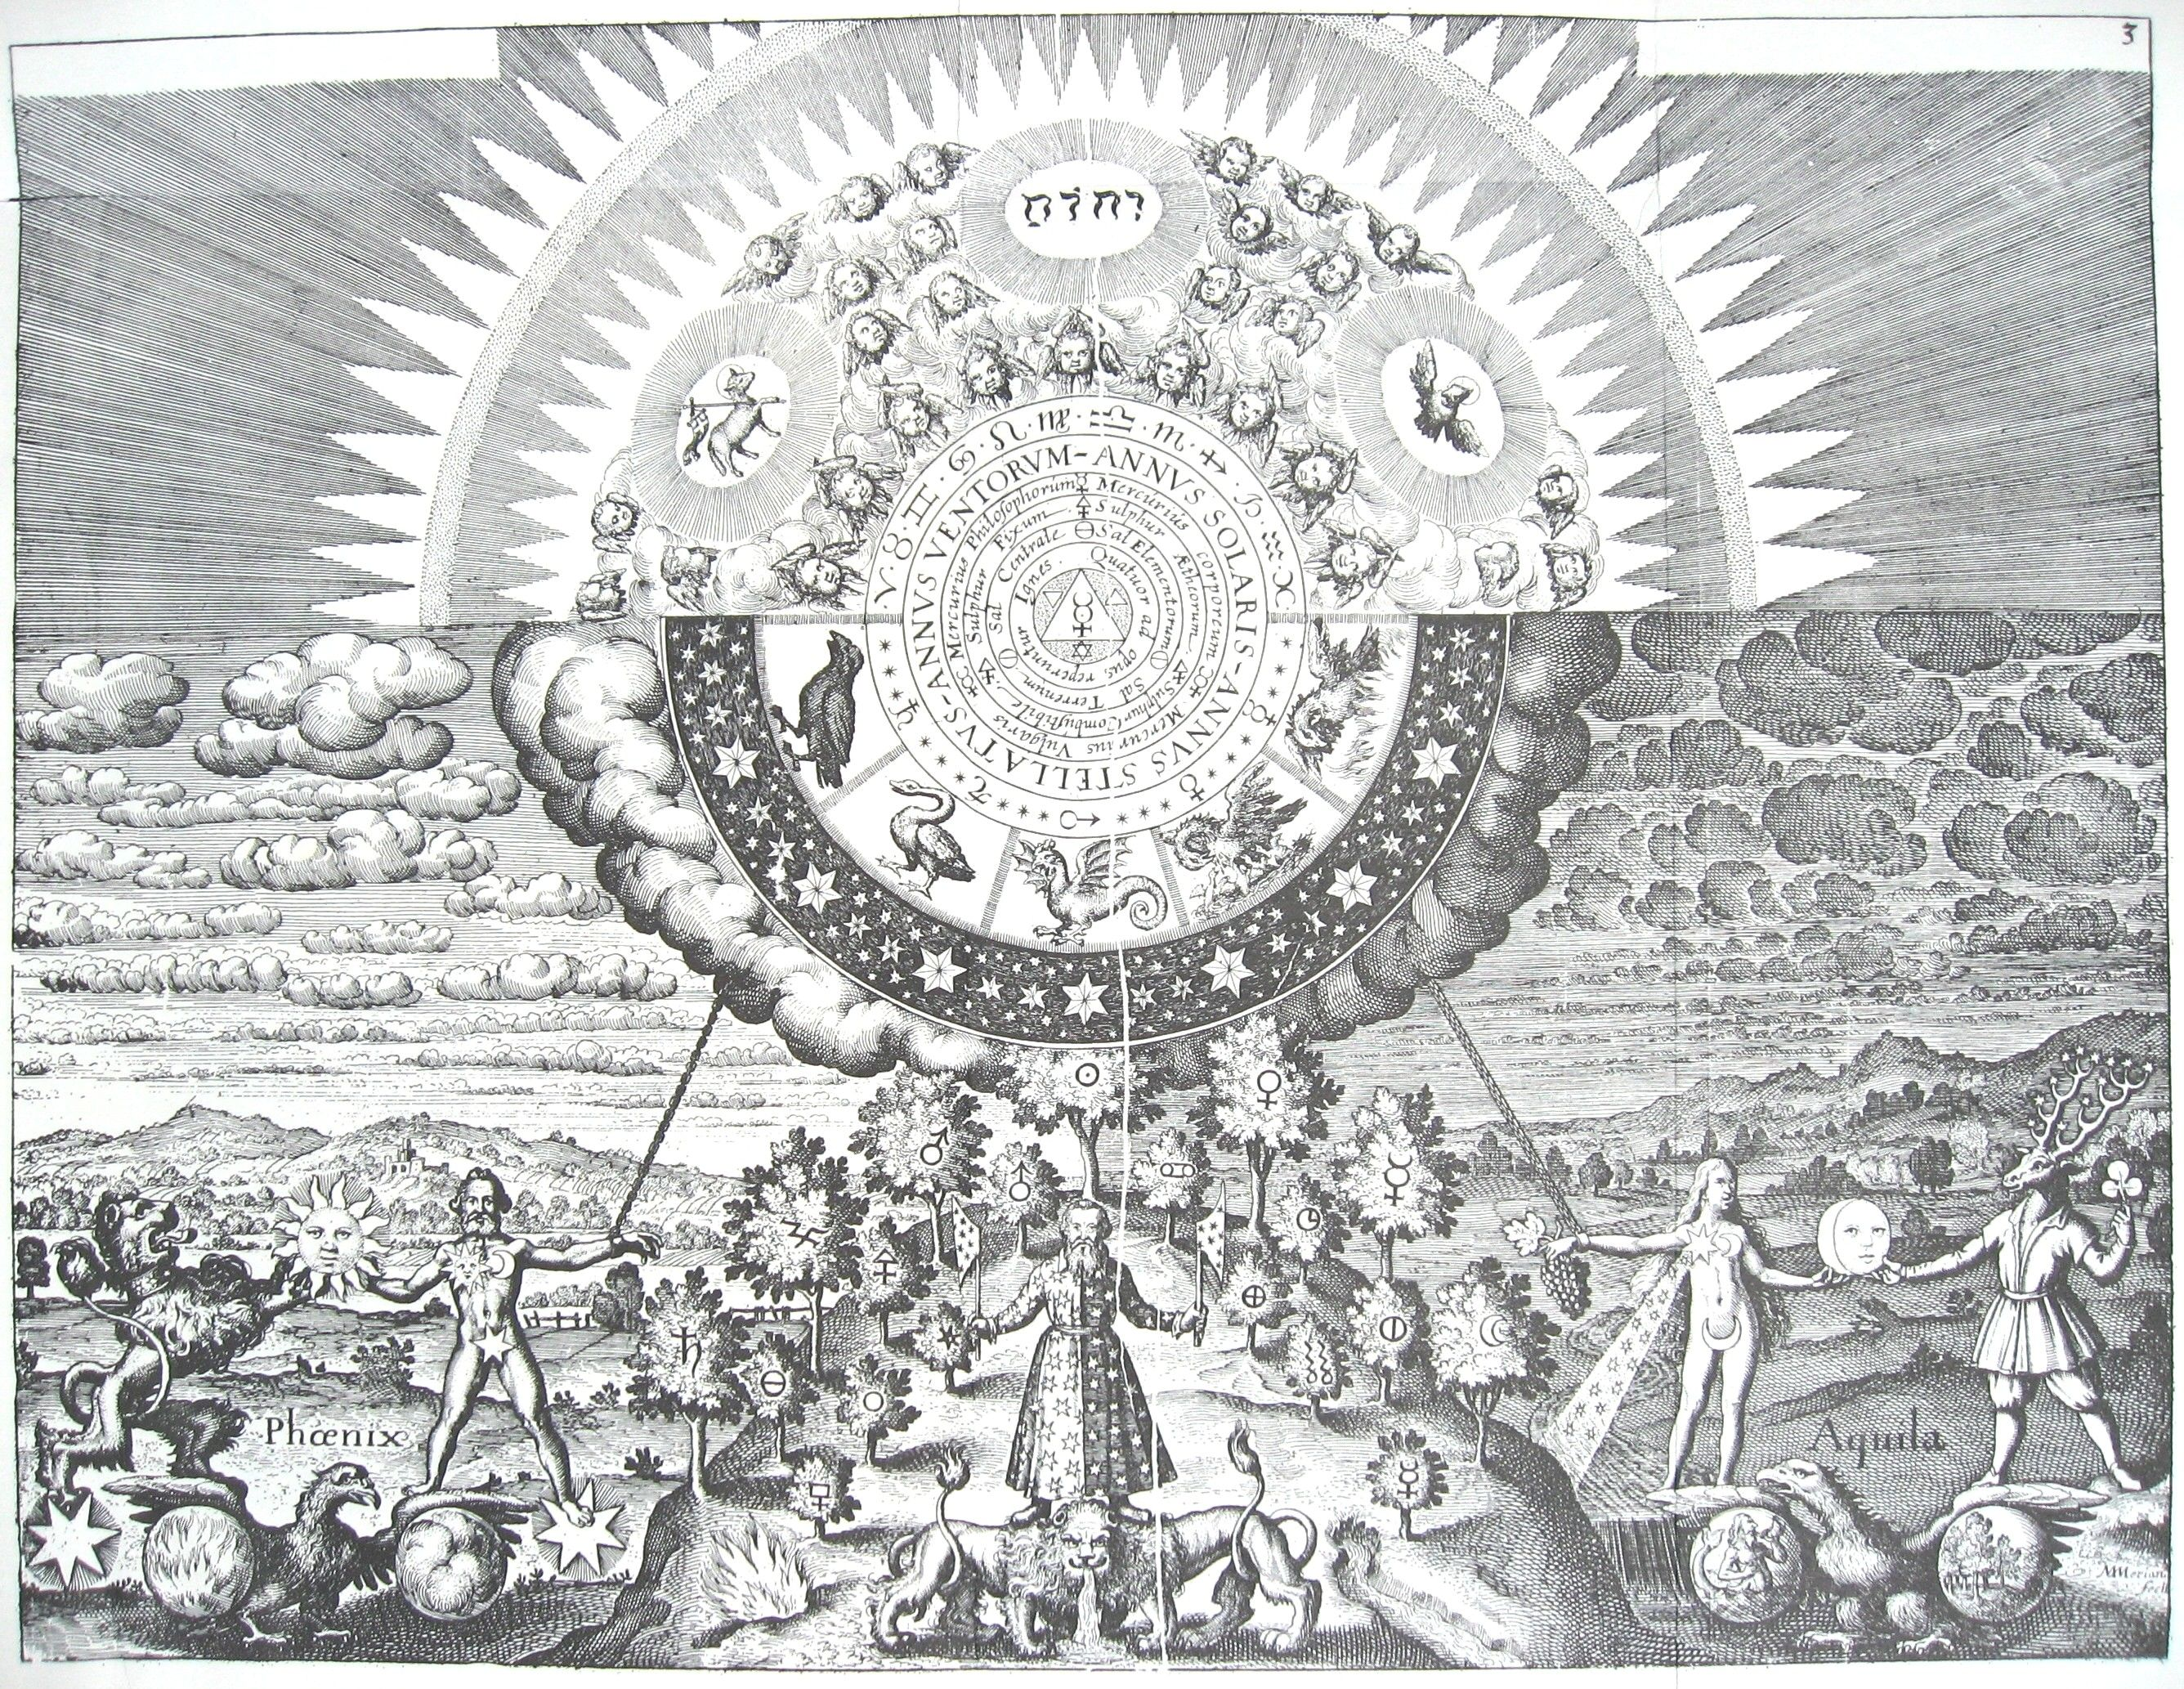 17 best alchemy images on pinterest alchemy full metal note the double lion guarding the start of the alchemical process shown in this picture biocorpaavc Images